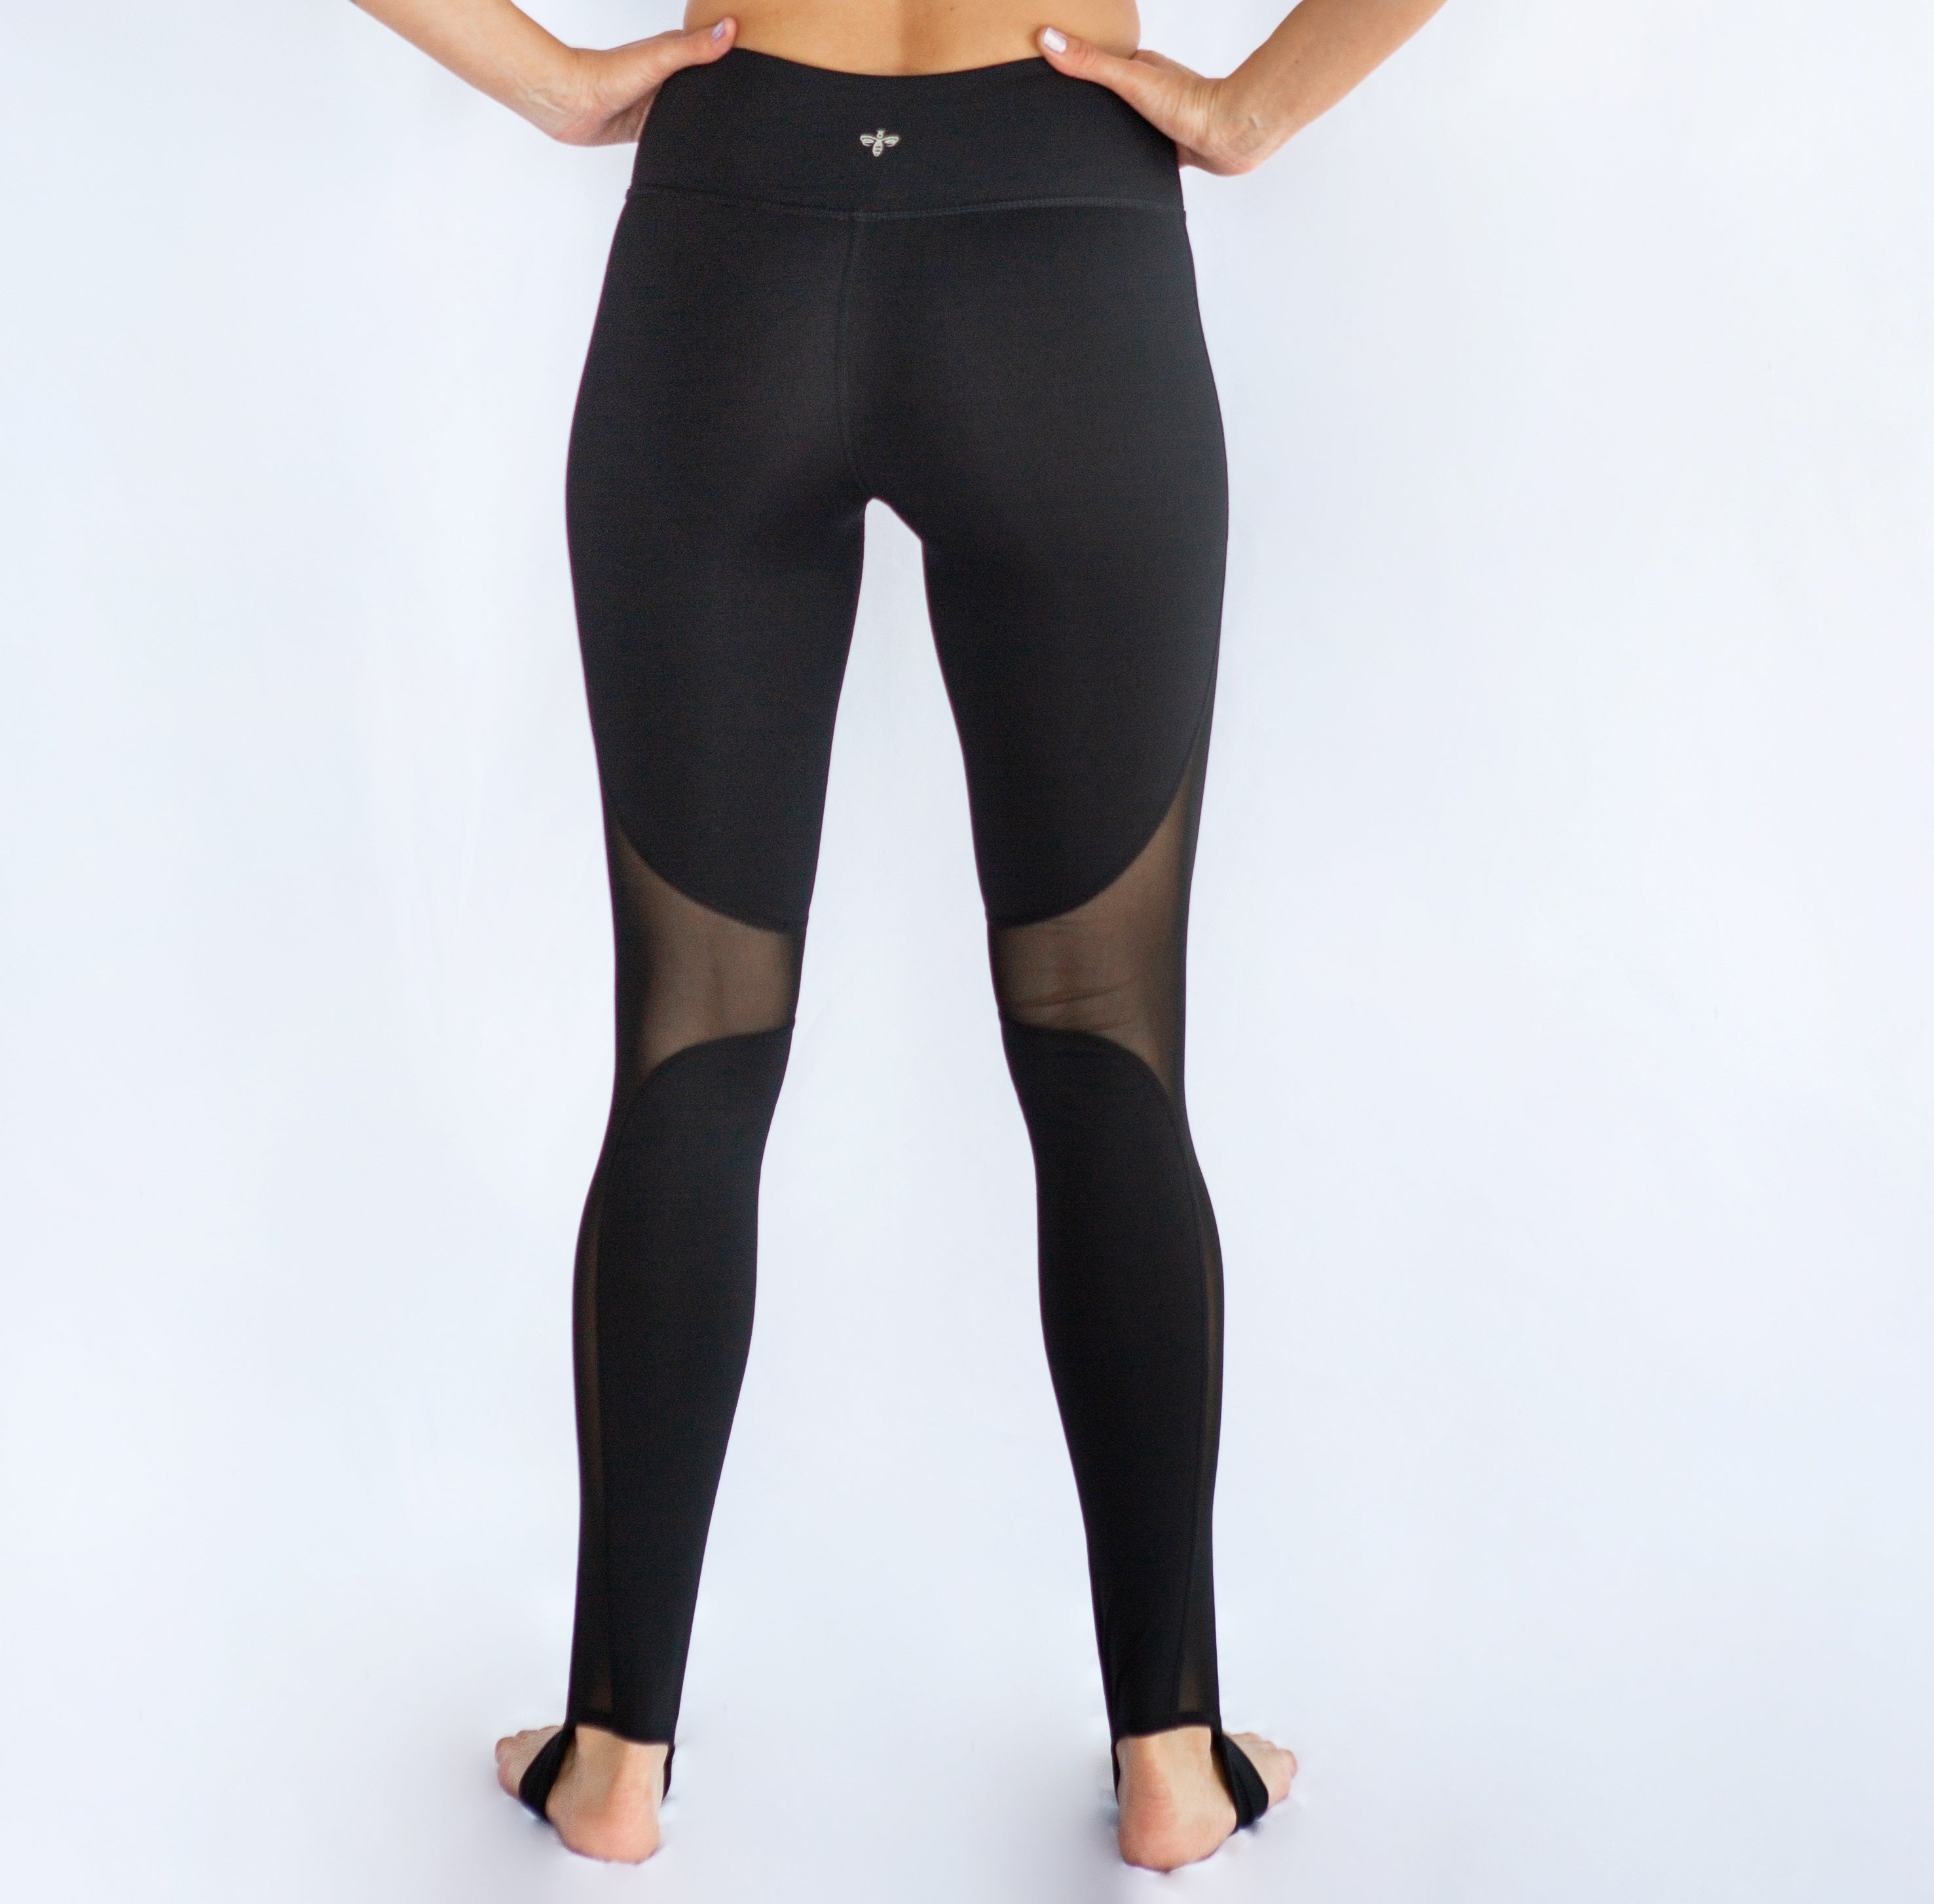 Stir Up Mesh Leggings